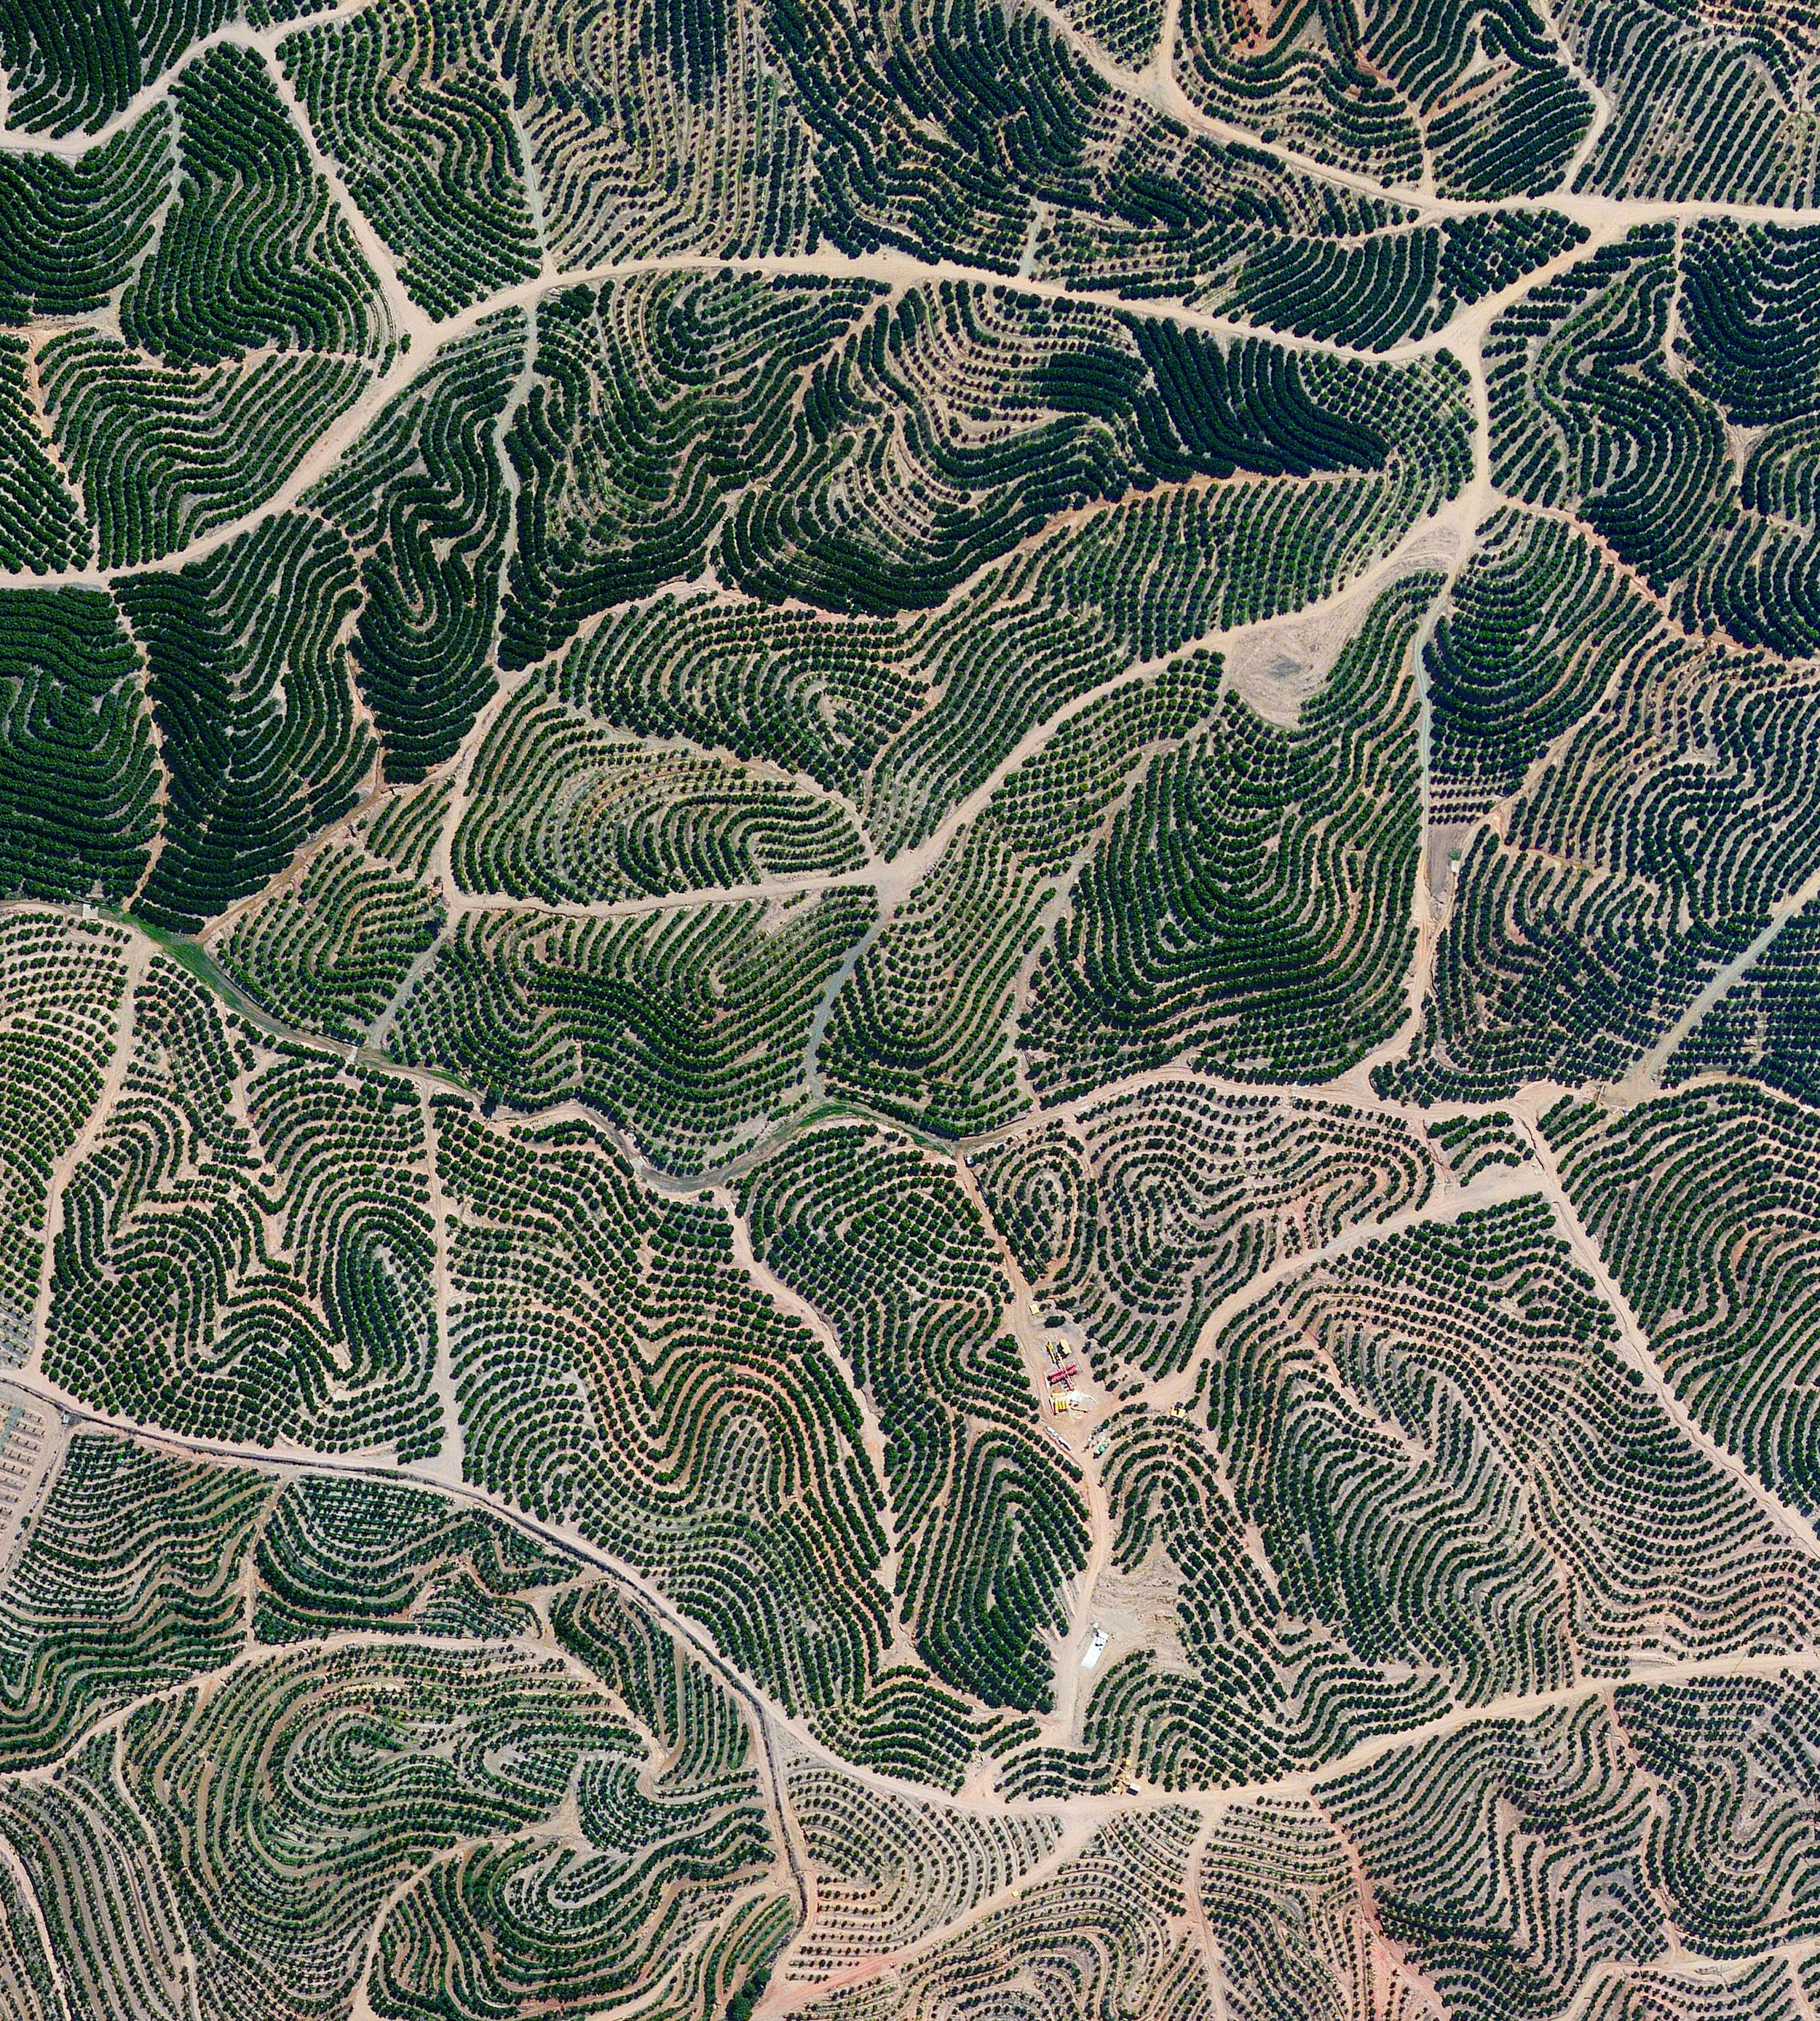 """Citrus trees create fingerprint-like patterns on the landscape in Isla Cristina, Spain. The climate in this region is ideal for citrus growth, with an average temperature of 64 degrees Fahrenheit (18°C) and a relative humidity between 60% and 80%.  37°14'28.1""""N, 7°17'40.1""""W  Source imagery: DigitalGlobe"""